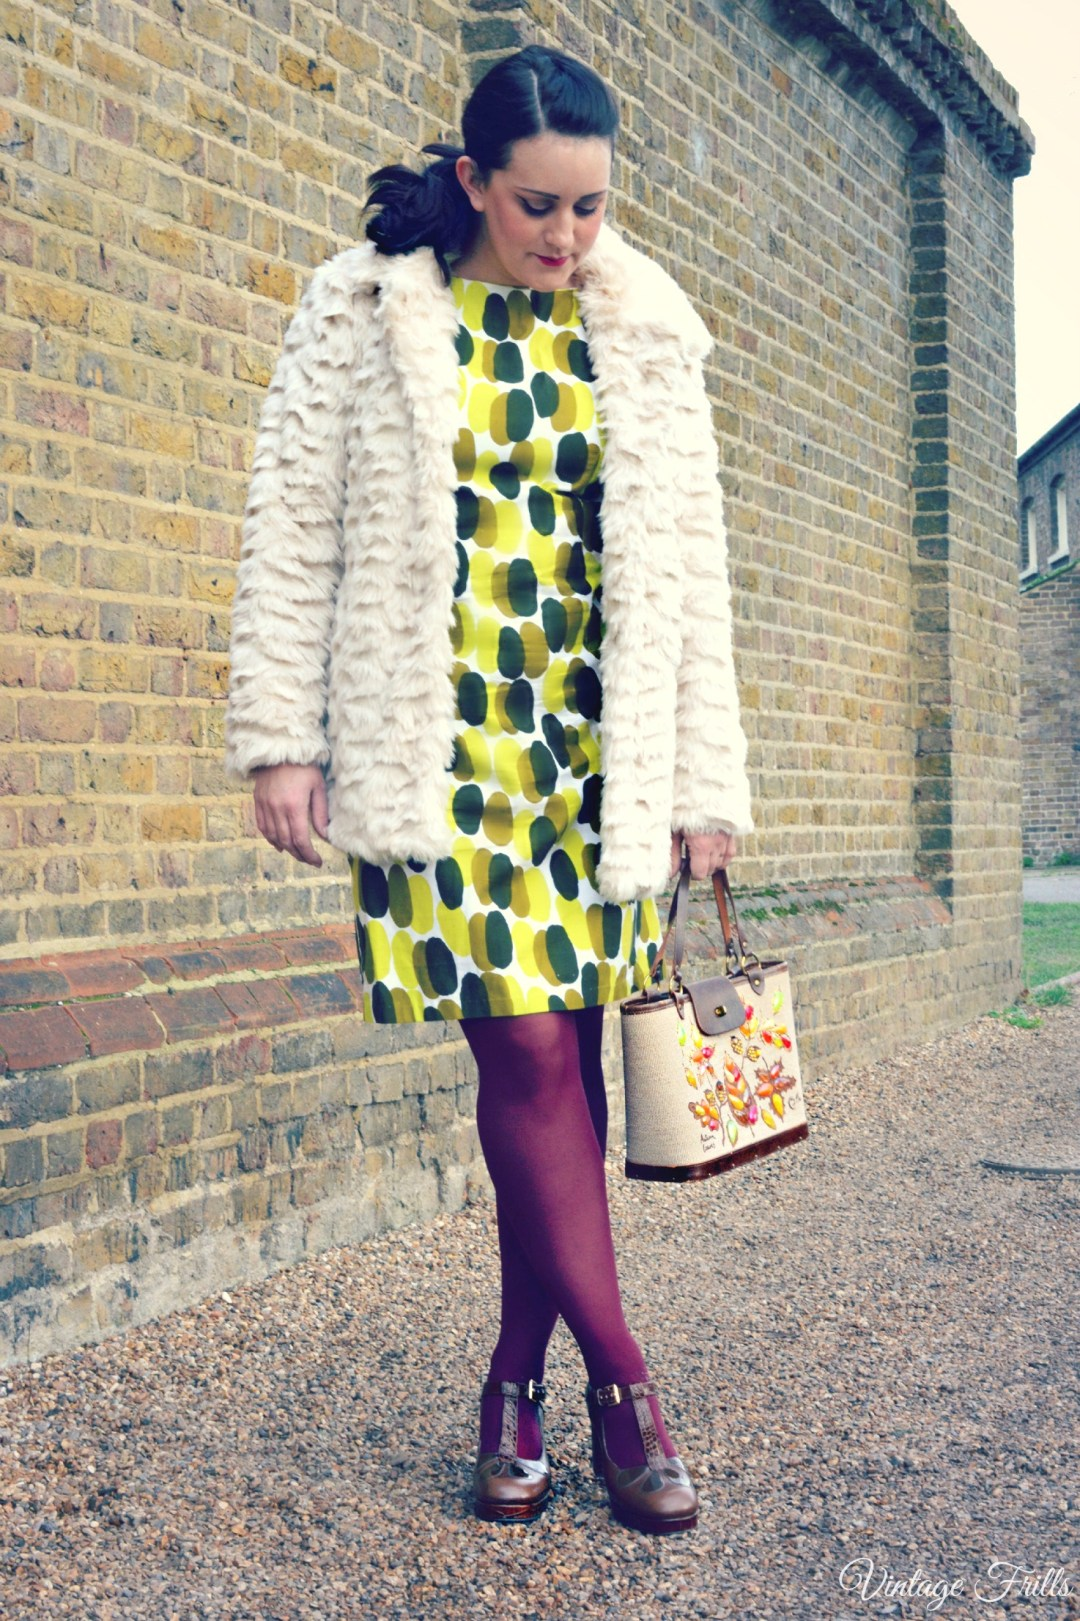 1960s outfit of the day - Clarks Orla Kiely Abigail shoes